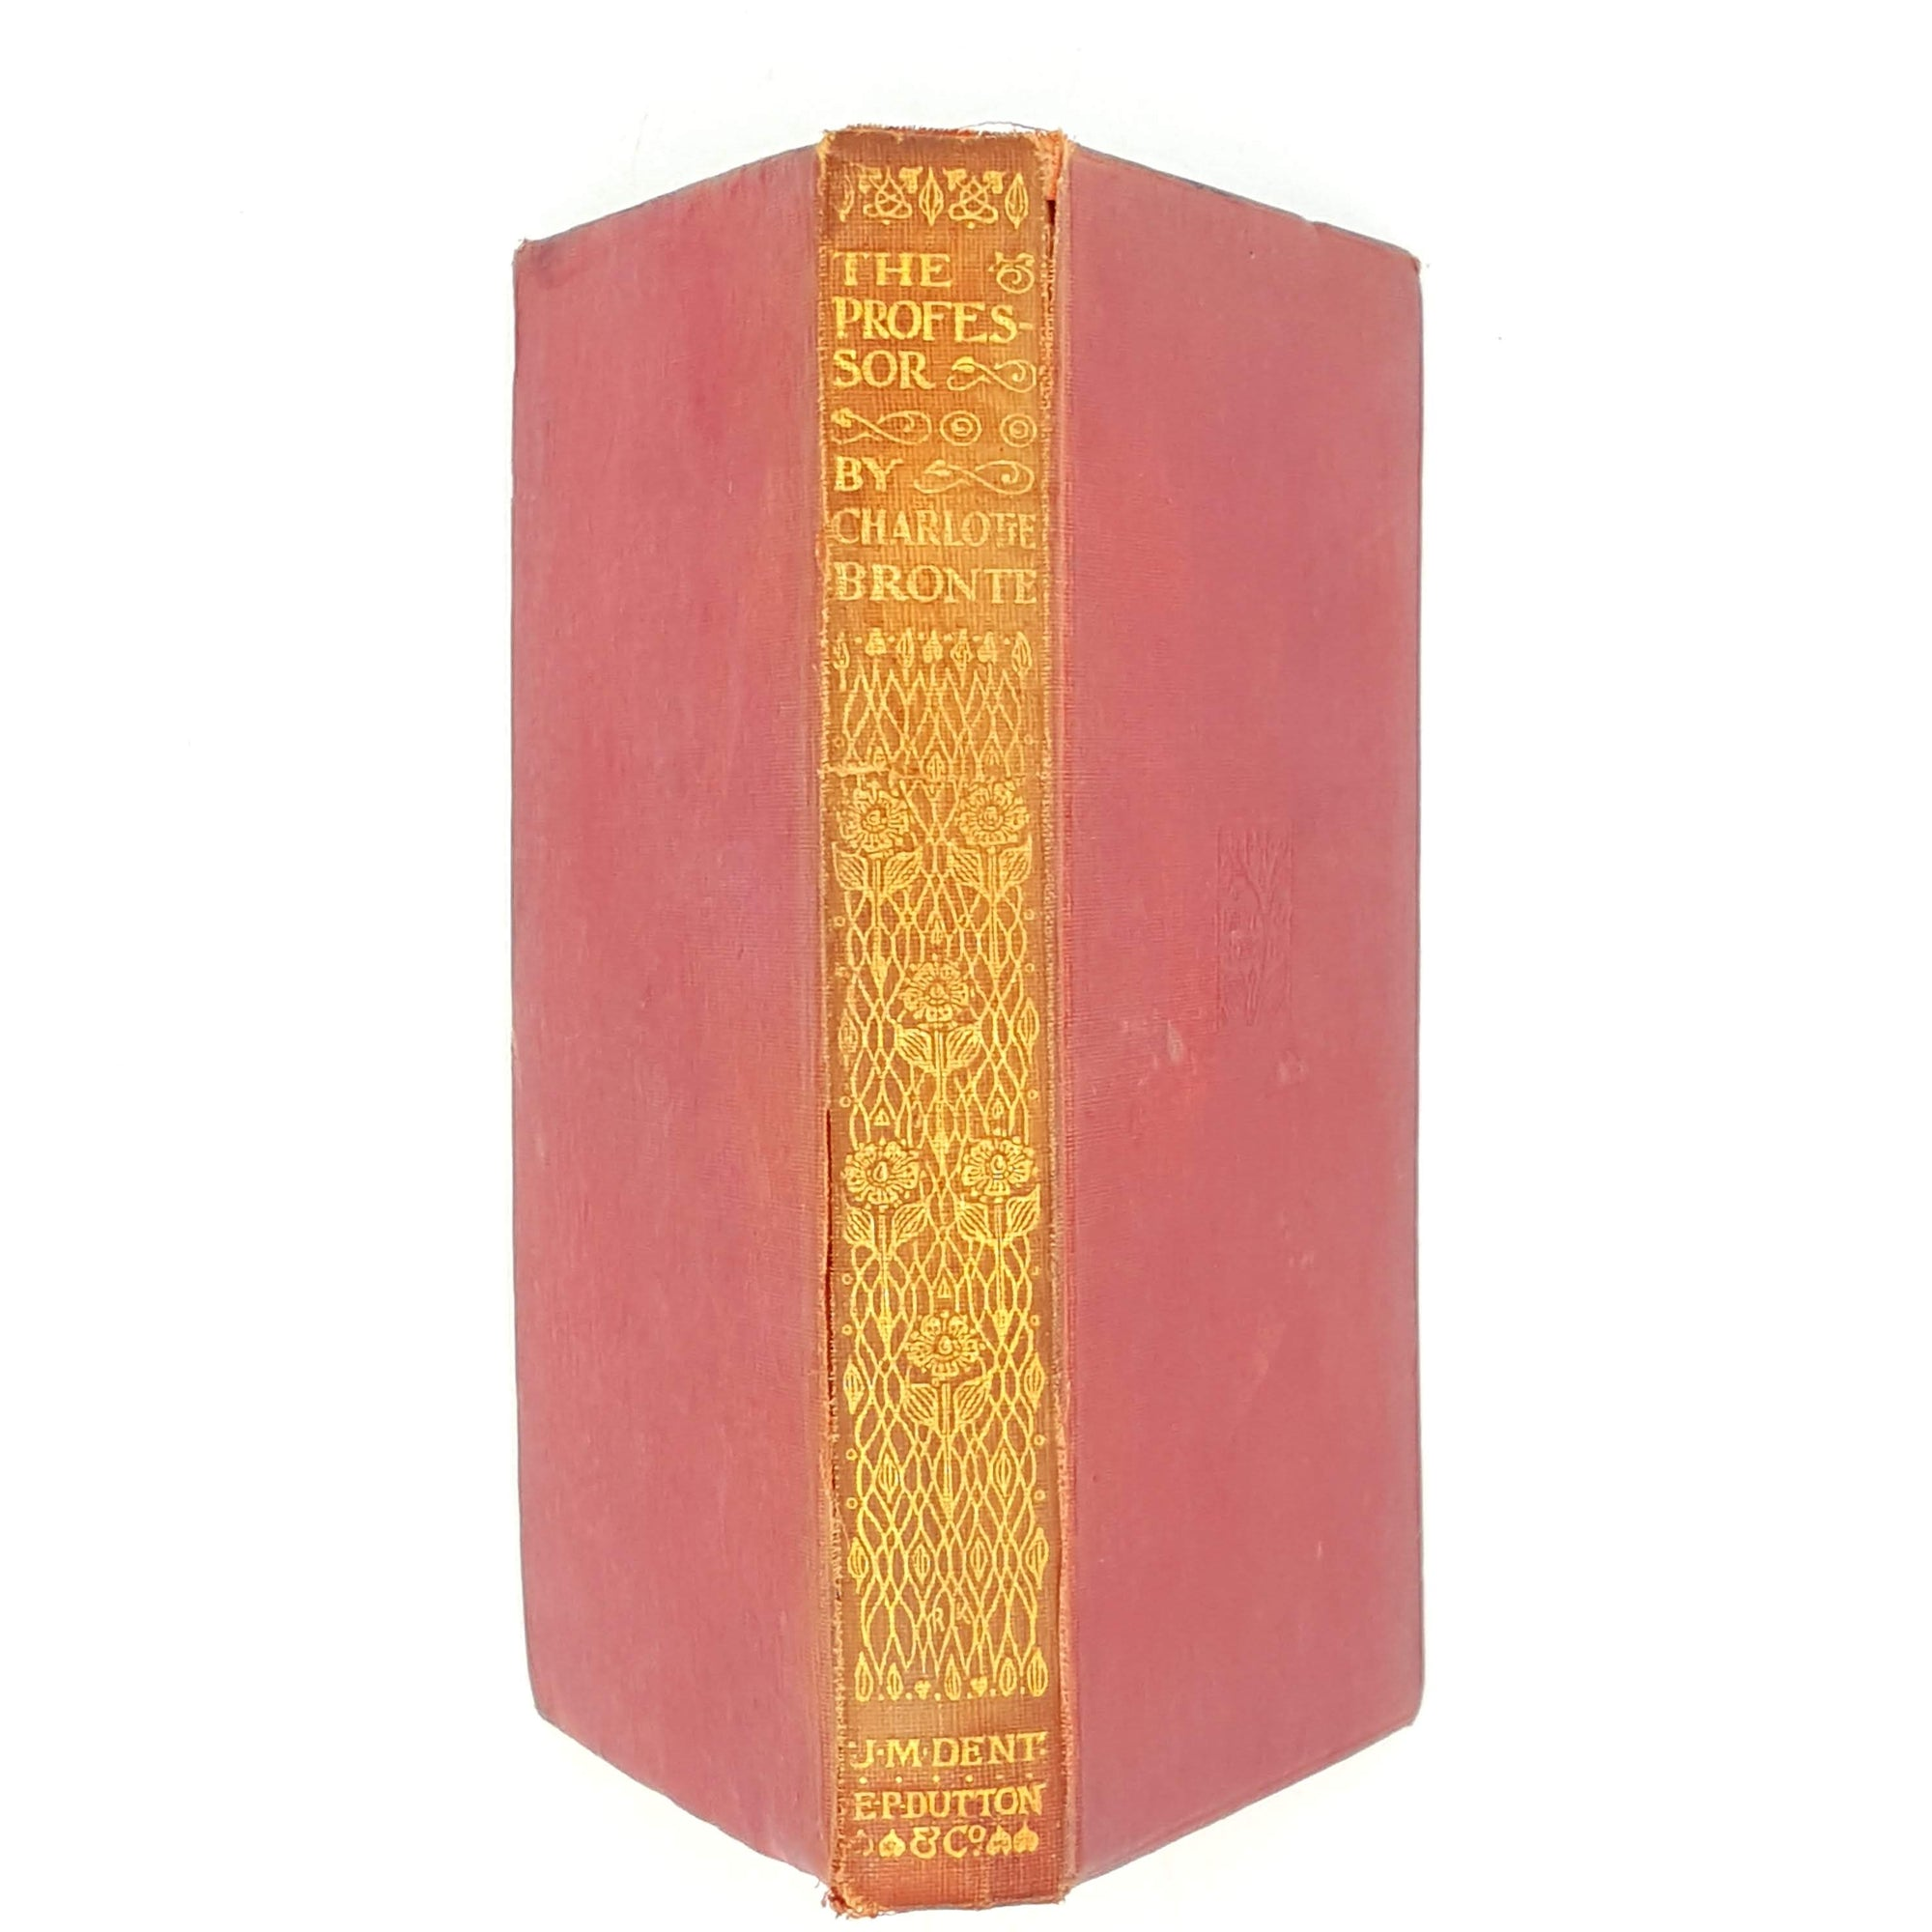 Vintage The Professor Dent Edition by Charlotte Bronte